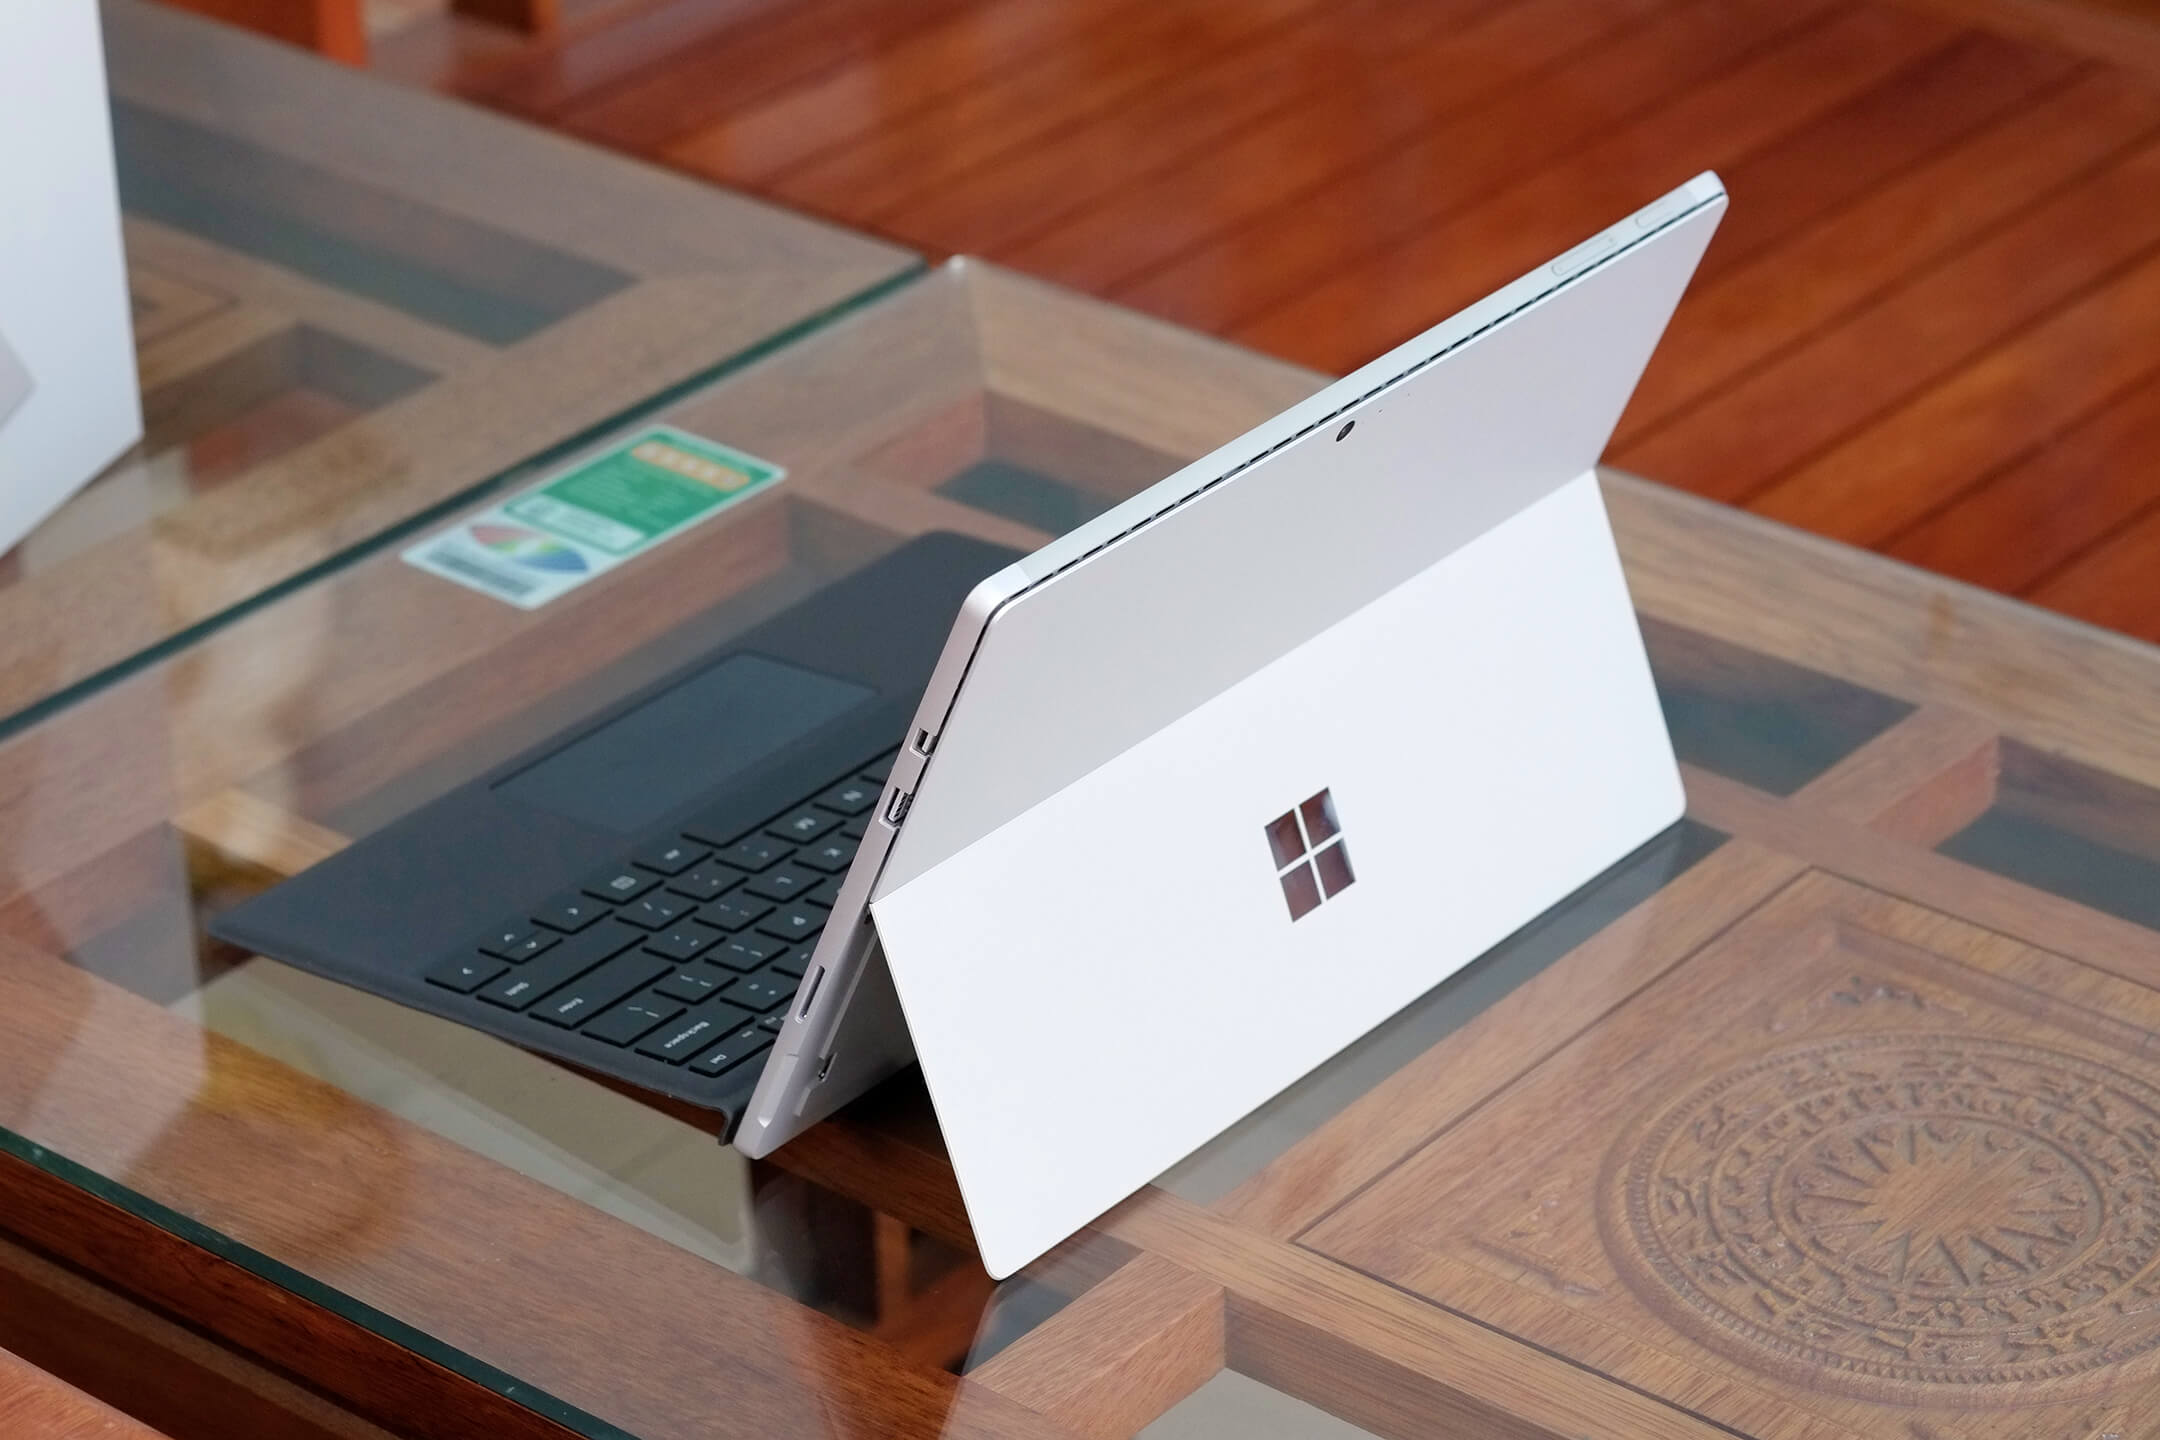 Surface Pro 6 (2018) Core i5 / 8GB / 128GB / TypeCover+Mouse / Fullbox Likenew